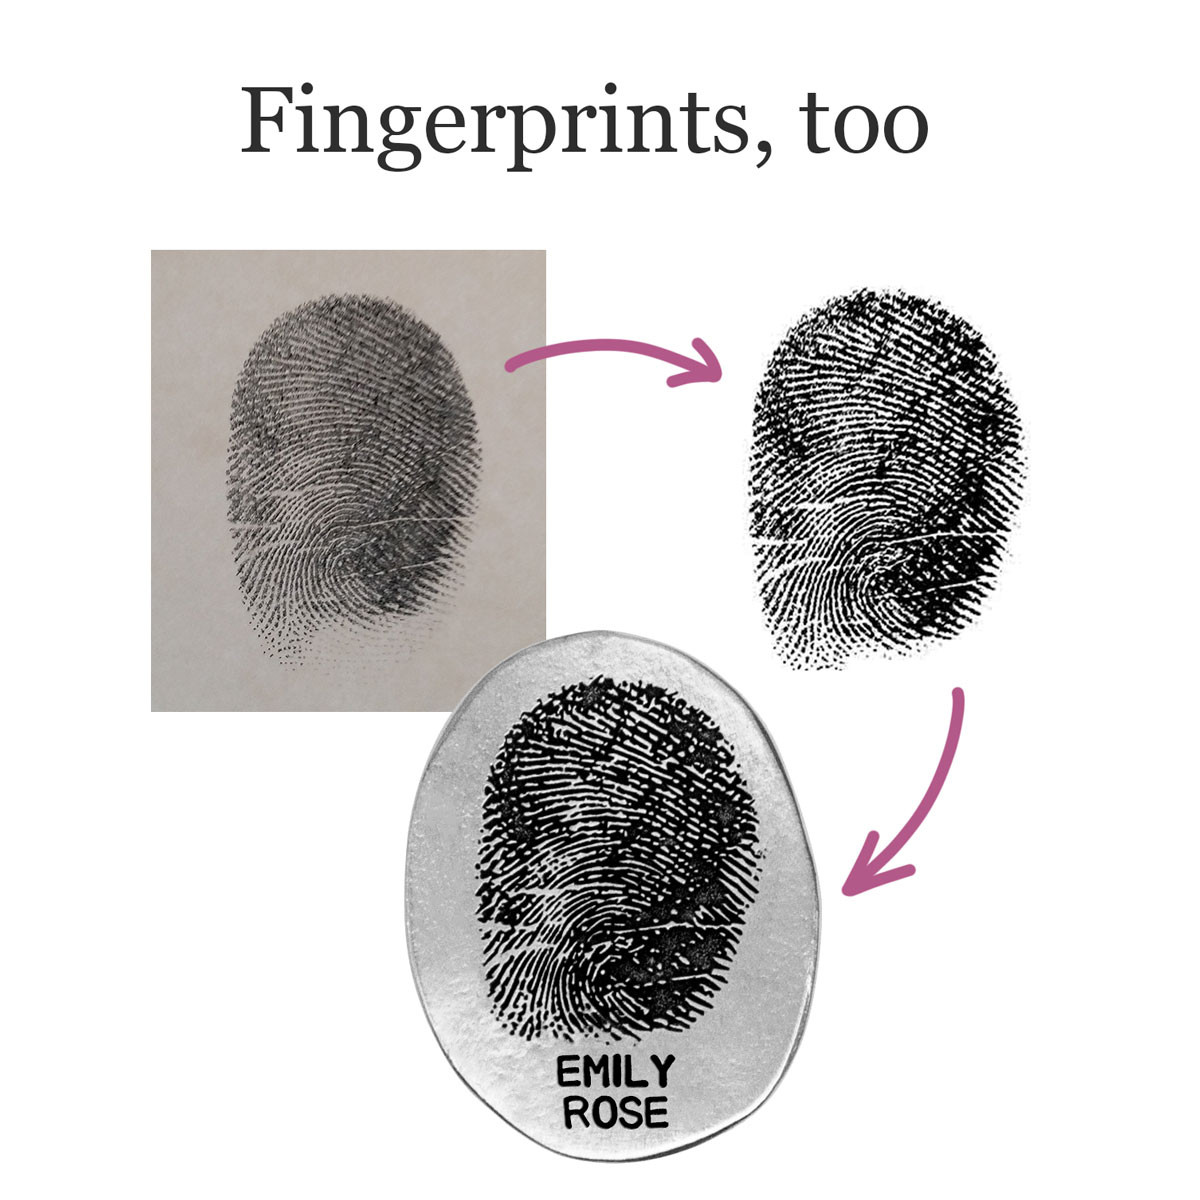 Showing how fingerprints are put onto jewelry